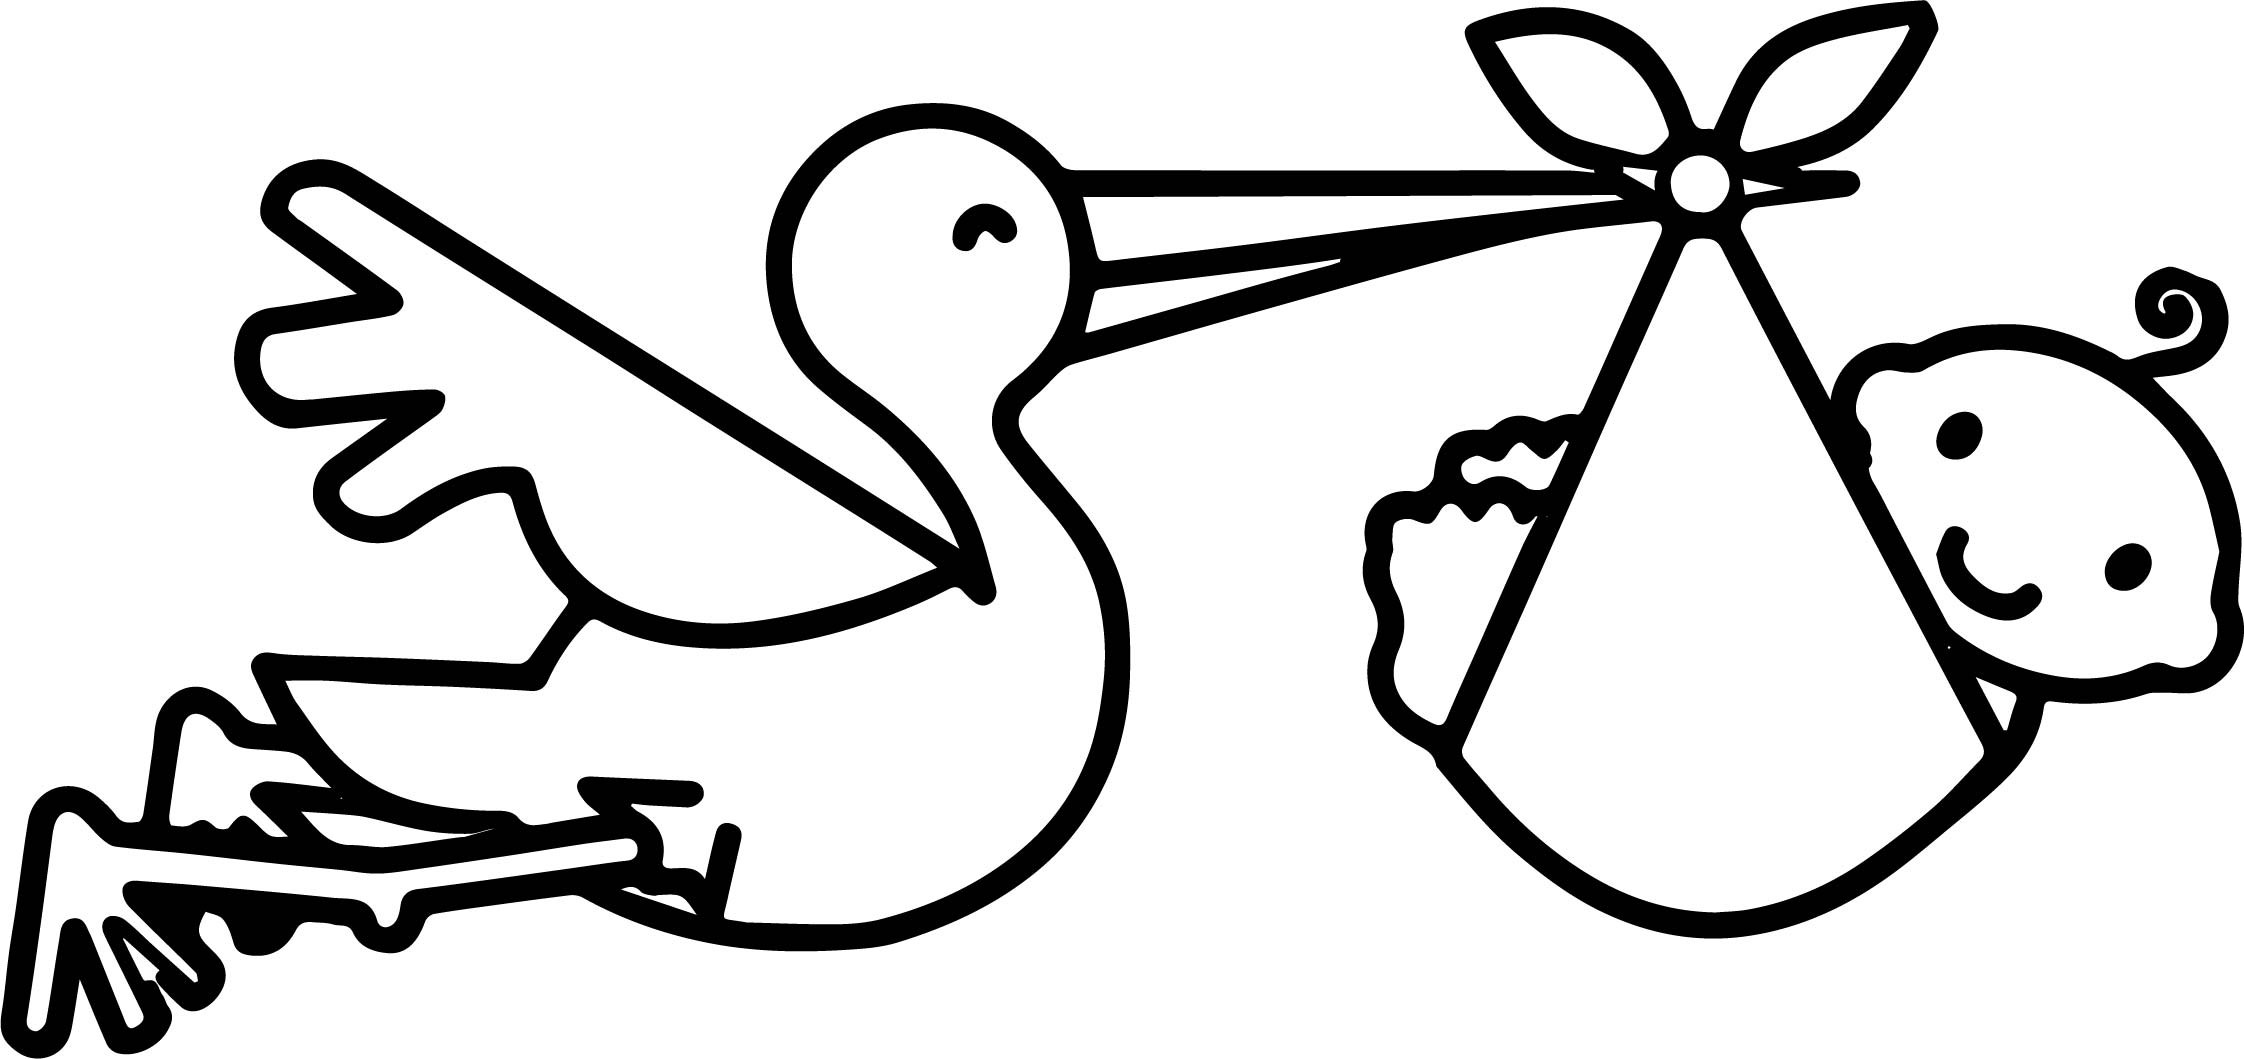 baby rattle coloring page baby rattle coloring page at getdrawings free download rattle baby coloring page